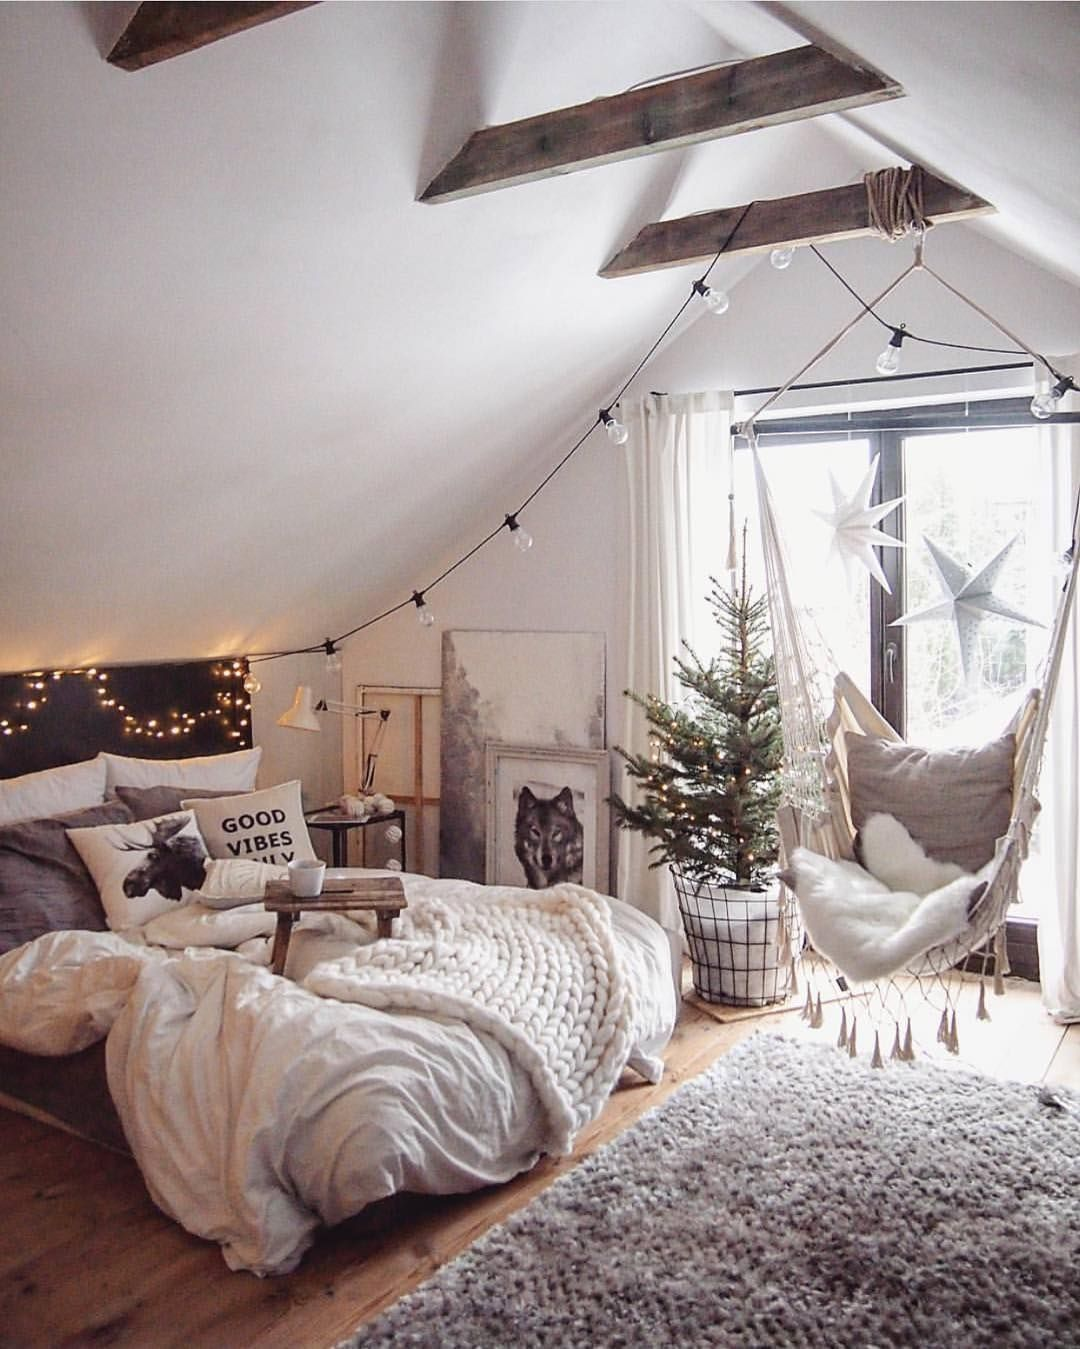 31 Beautiful bedrooms with great ideas that you should to try - bedroom decor ideas #bedroom #homedecor #bedroomdecor